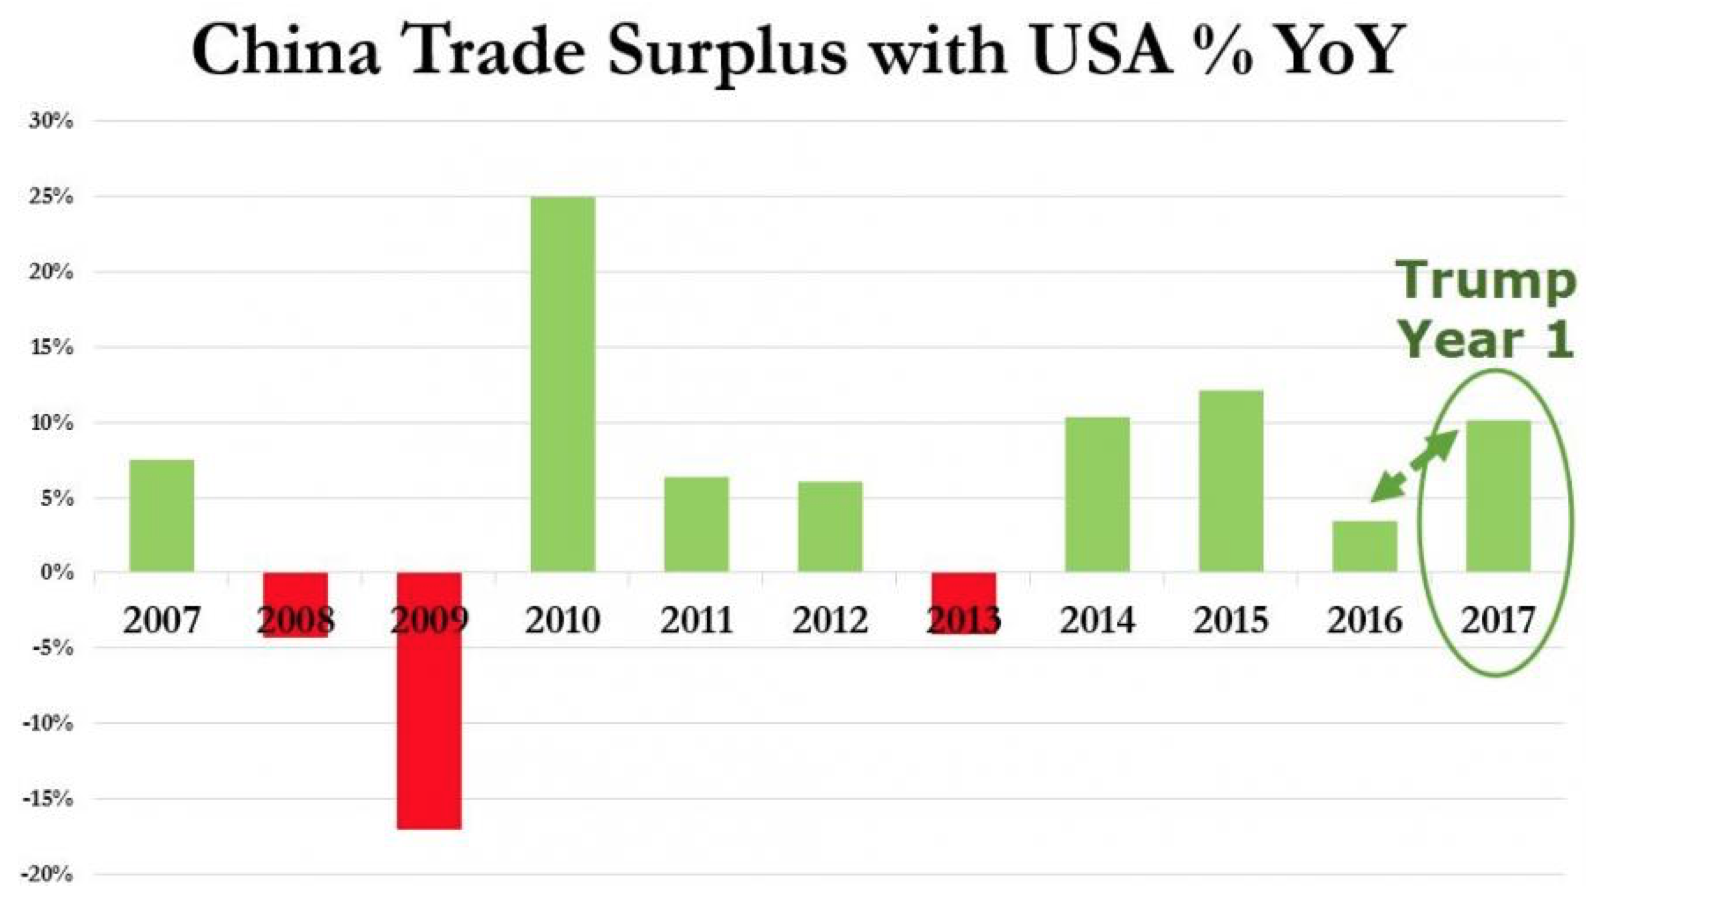 China trade surplus with USA